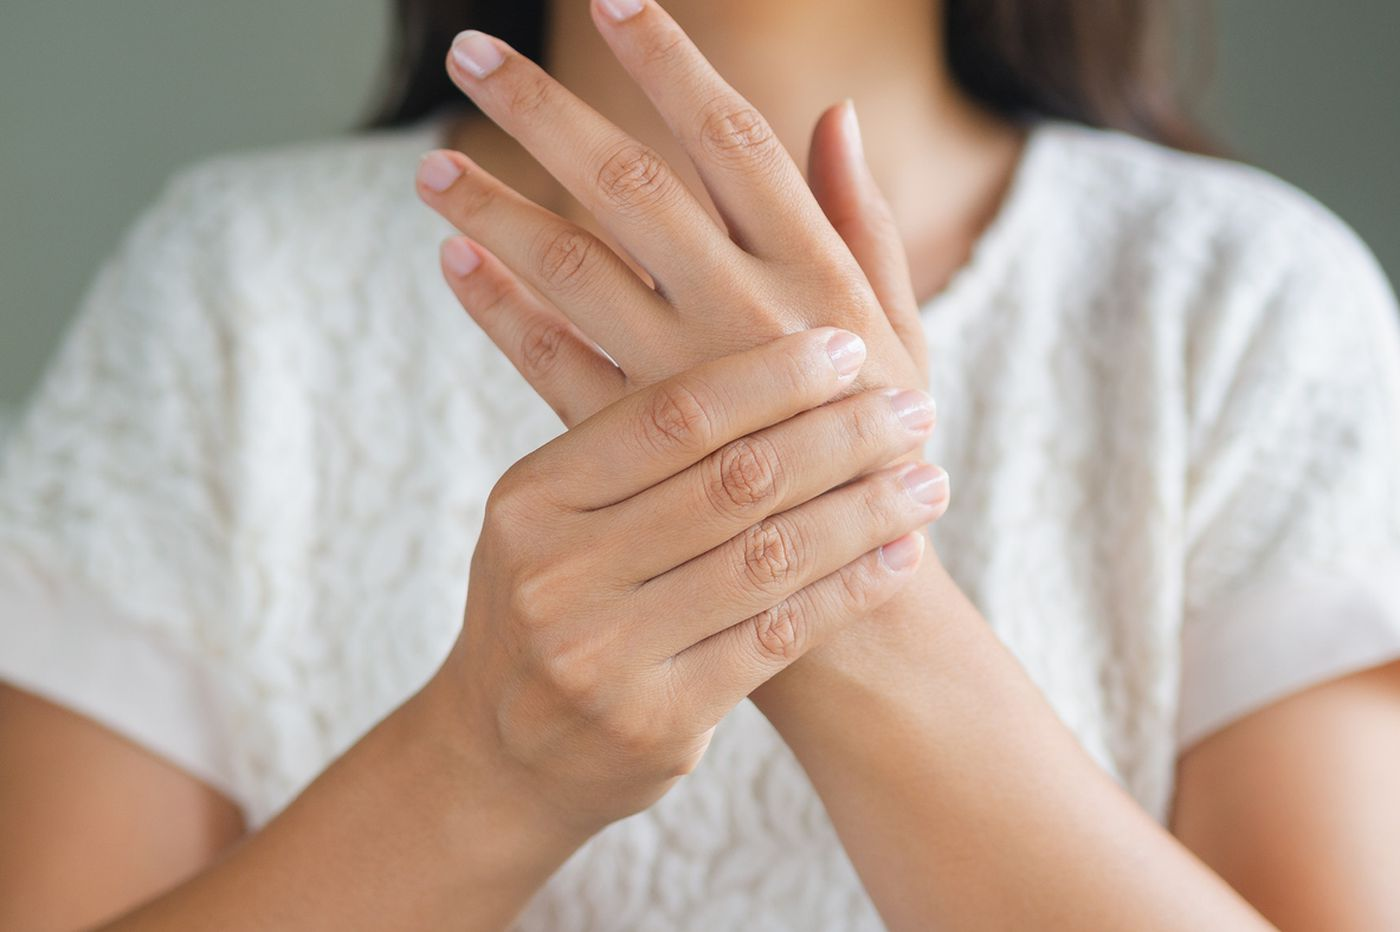 Medical Mystery: What caused this woman's wrist to swell?